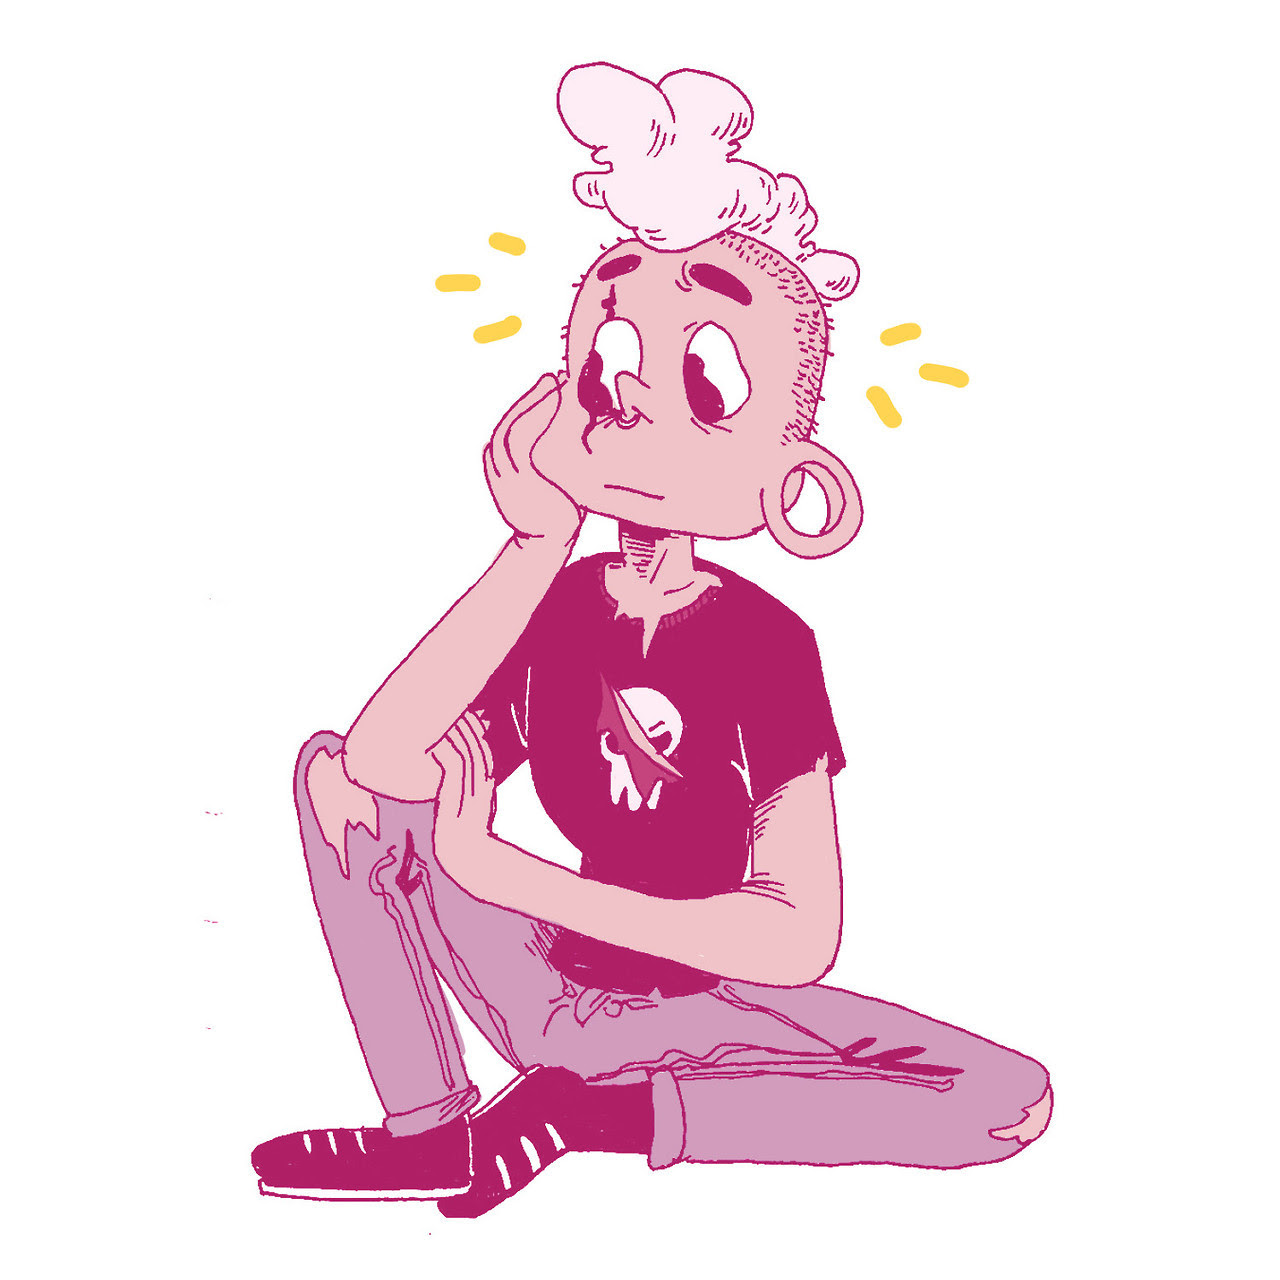 oh boy steven bomb 7 sure was something huh and yes I gave the sweet pinkboy a septum ring because he's Hardcore and Tuff and I love him